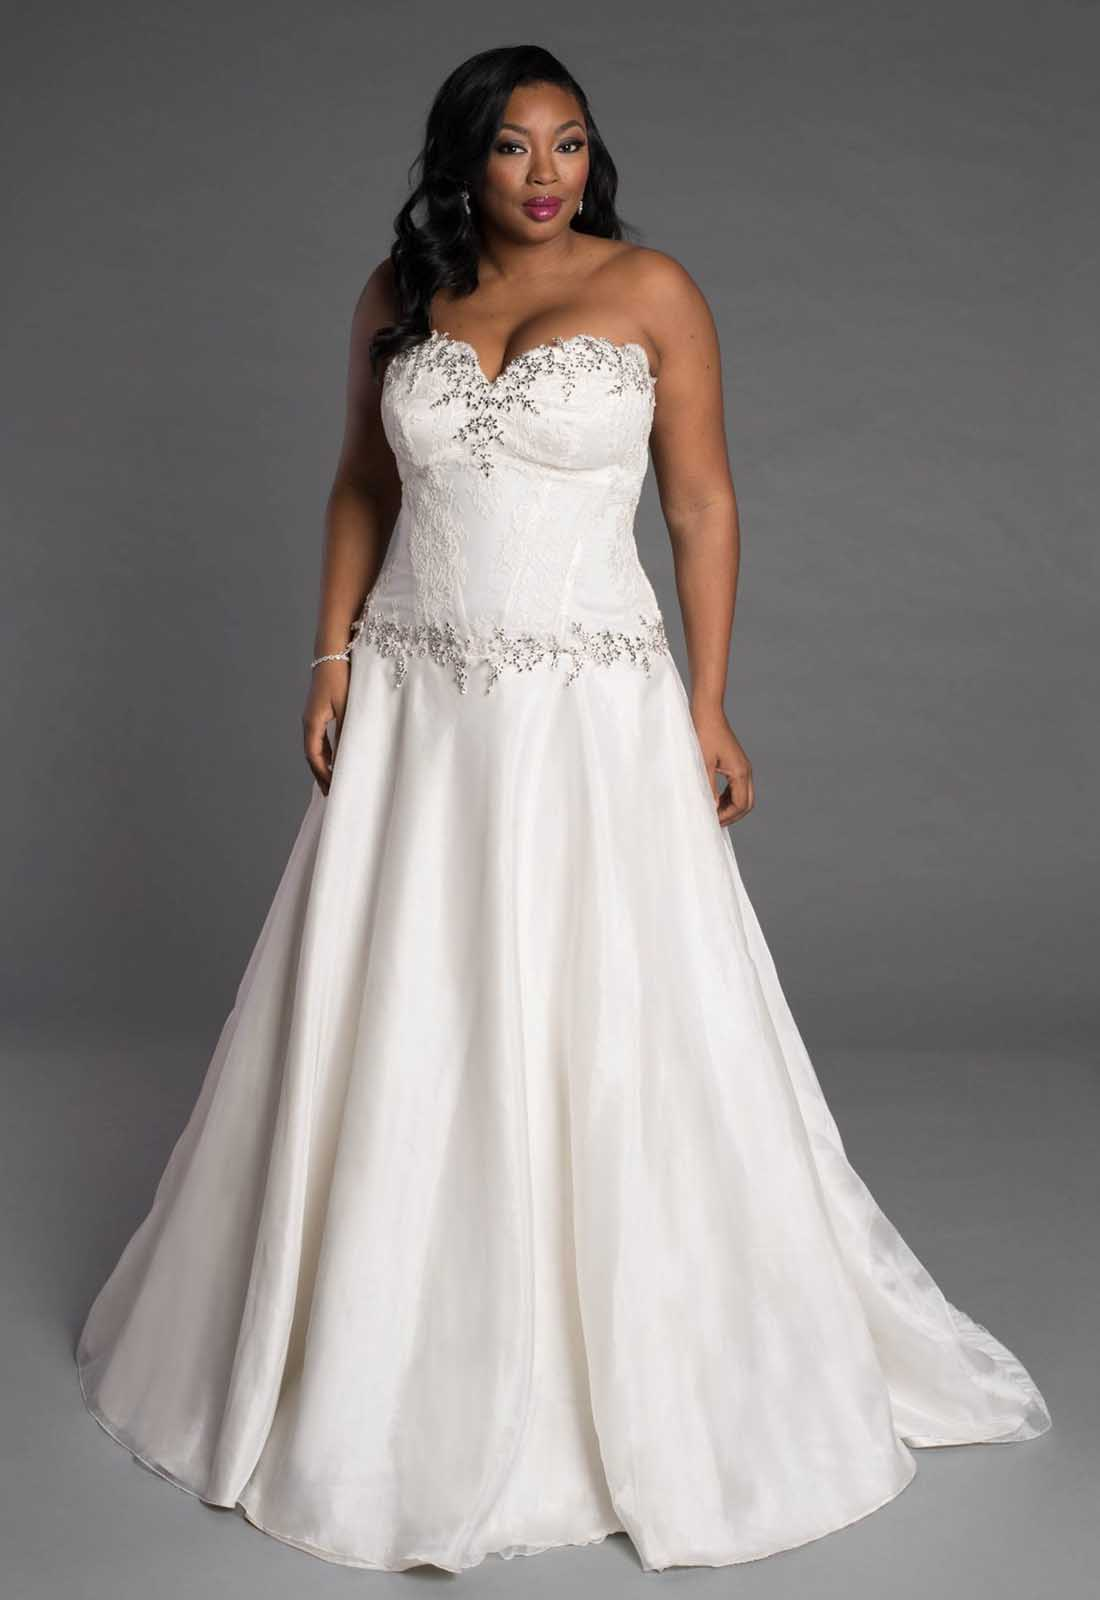 3a1455fecc3b3 Personally, my favorite silhouettes for plus size brides are anything  fitted, such as a mermaid or sheath gown, and ball gowns. I think the  tighter fitting ...